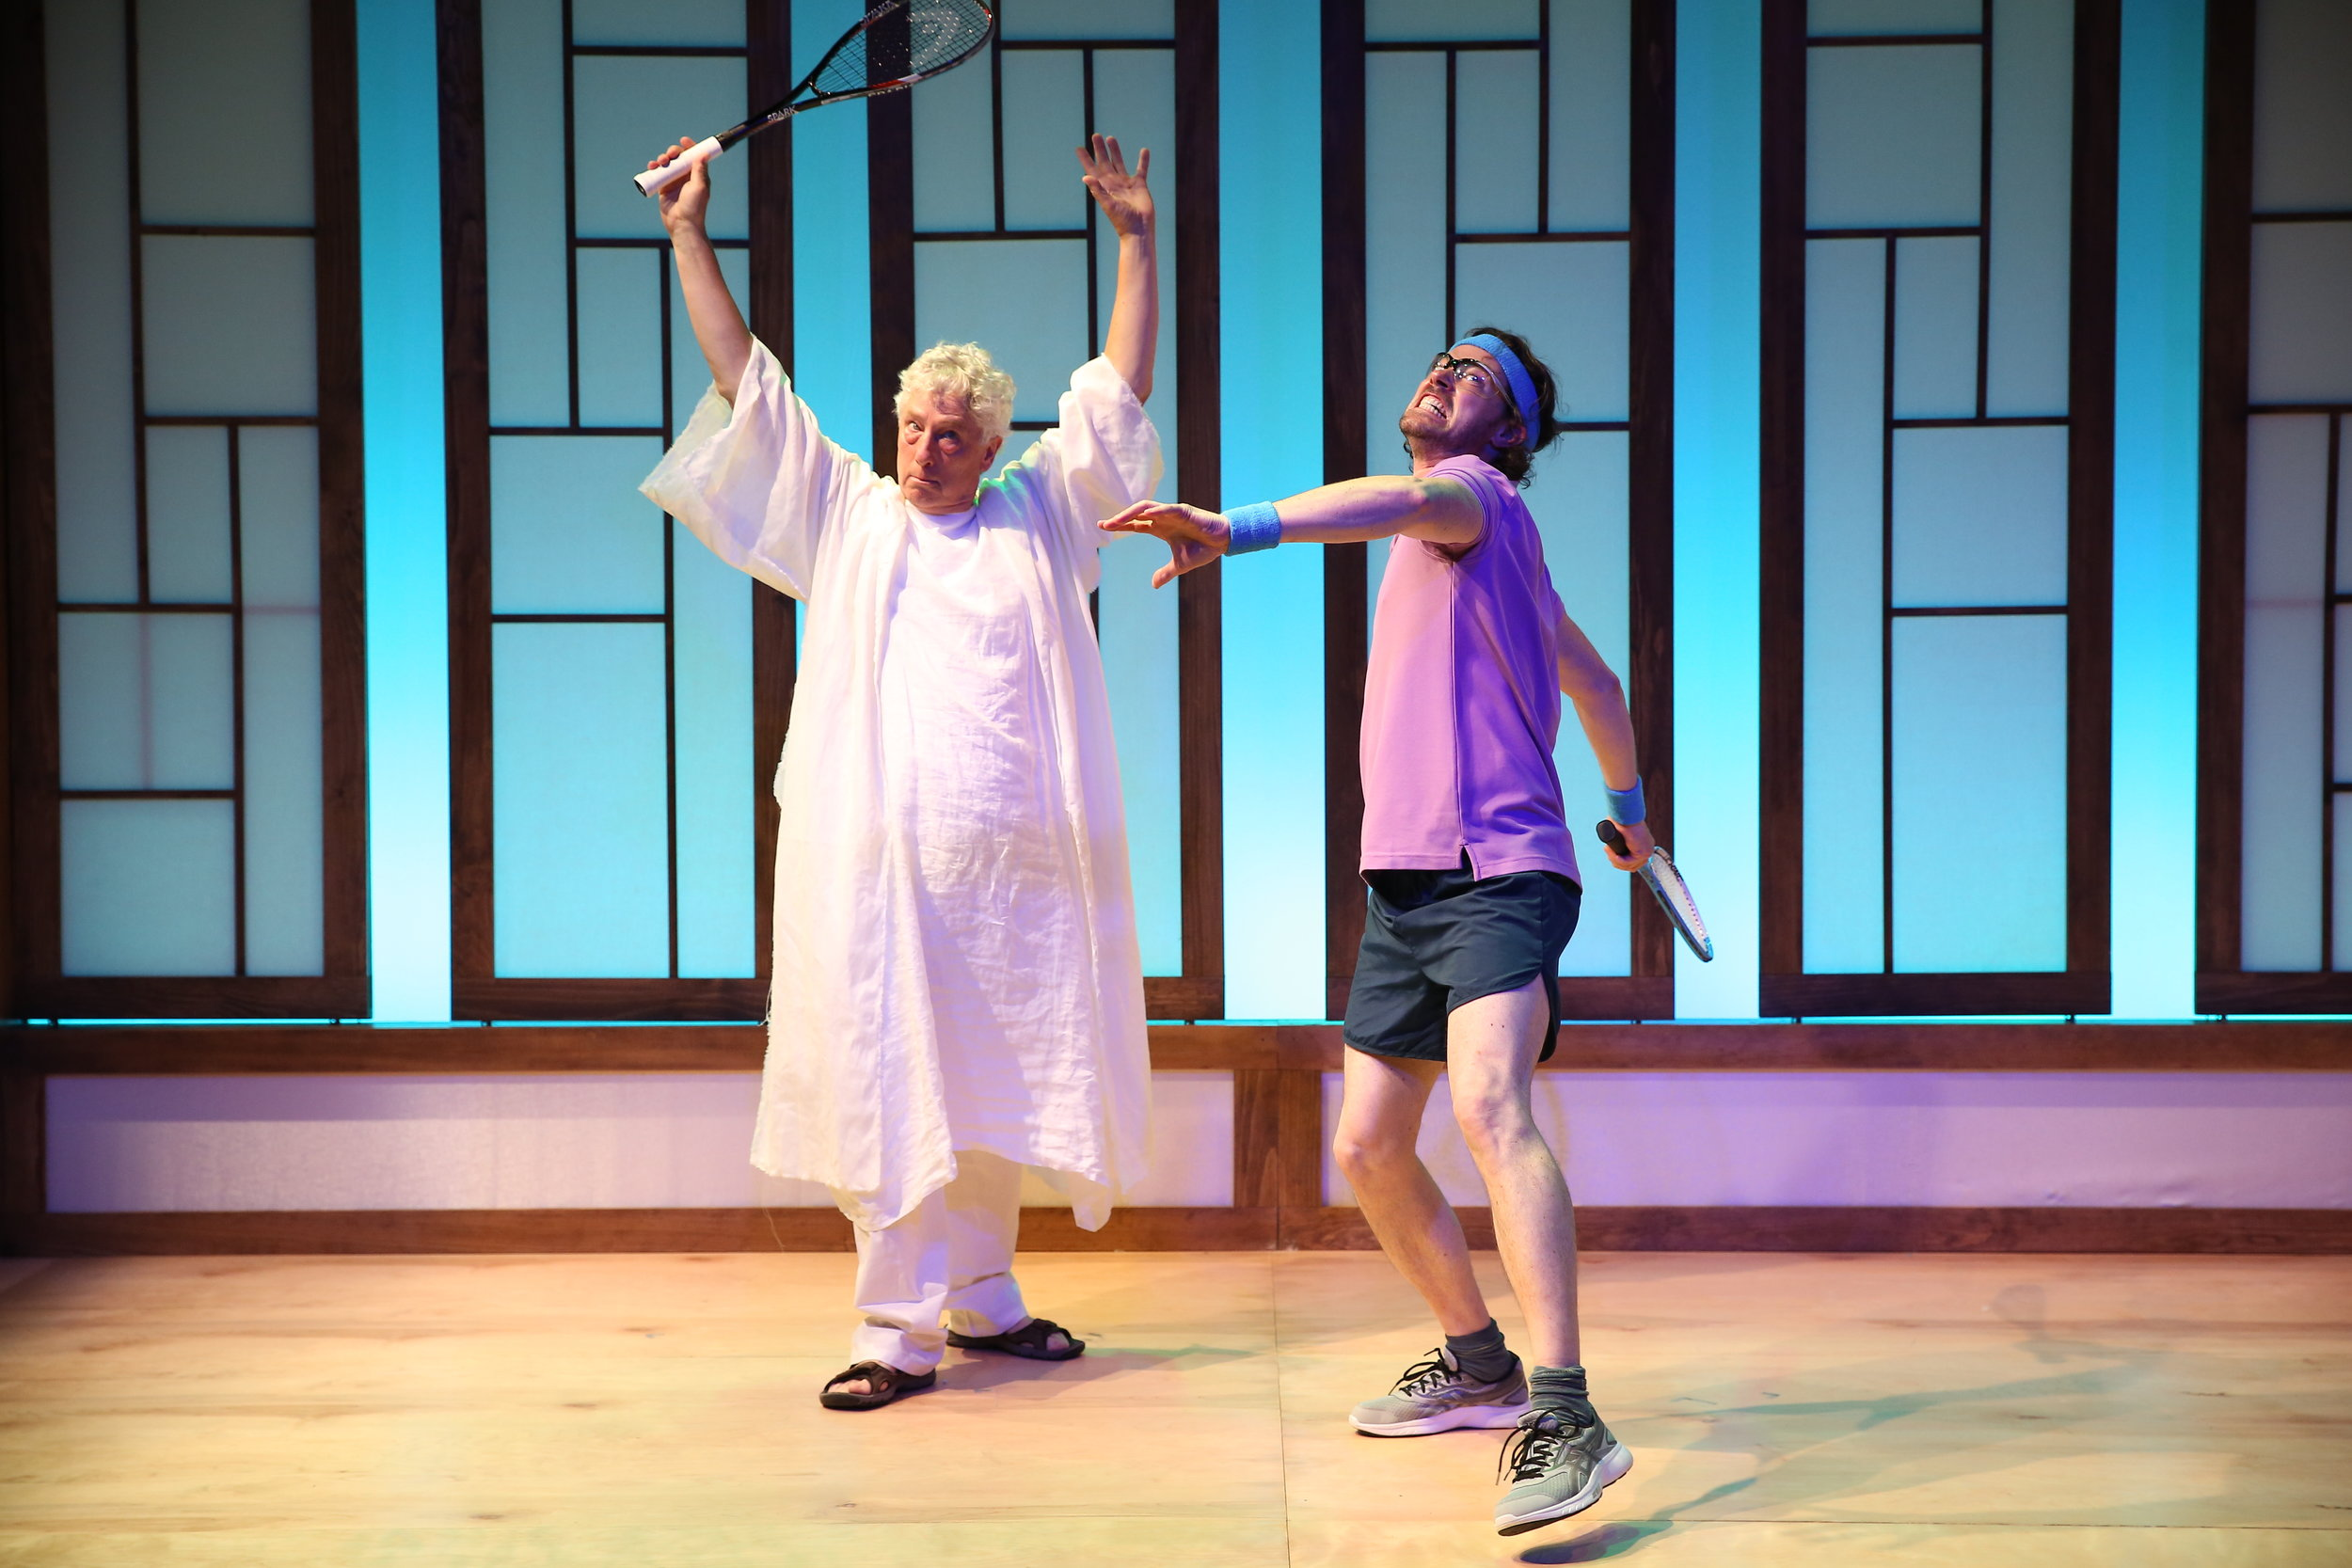 L-R: Bill Buell and Dana Watkins in PLAYING GOD by Alan Zweibel, part of Summer Shorts 2017 at 59E59 Theaters. Photo by Carol Rosegg